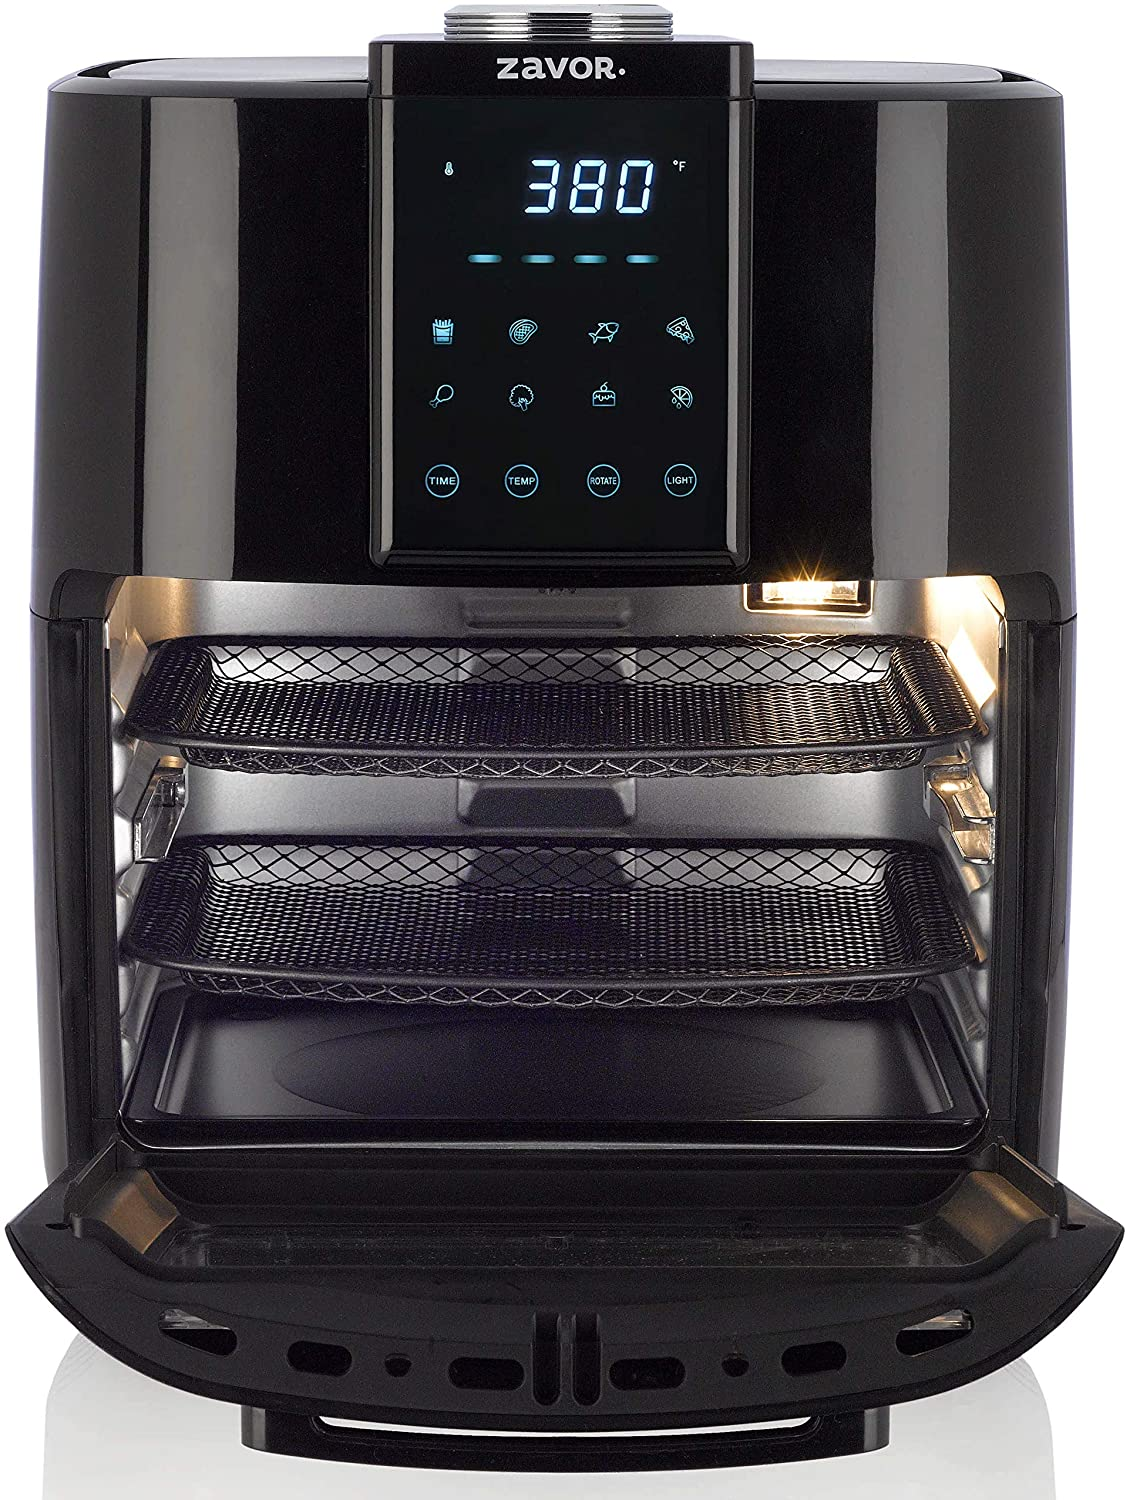 Zavor Crunch All-in-One Air Fryer Oven & Dehydrator with Rotisserie & Racks | Large 12.7Qt Capacity for Optimal Air Circulation, Accessories & Recipe eBook, Black (ZSEAF22)